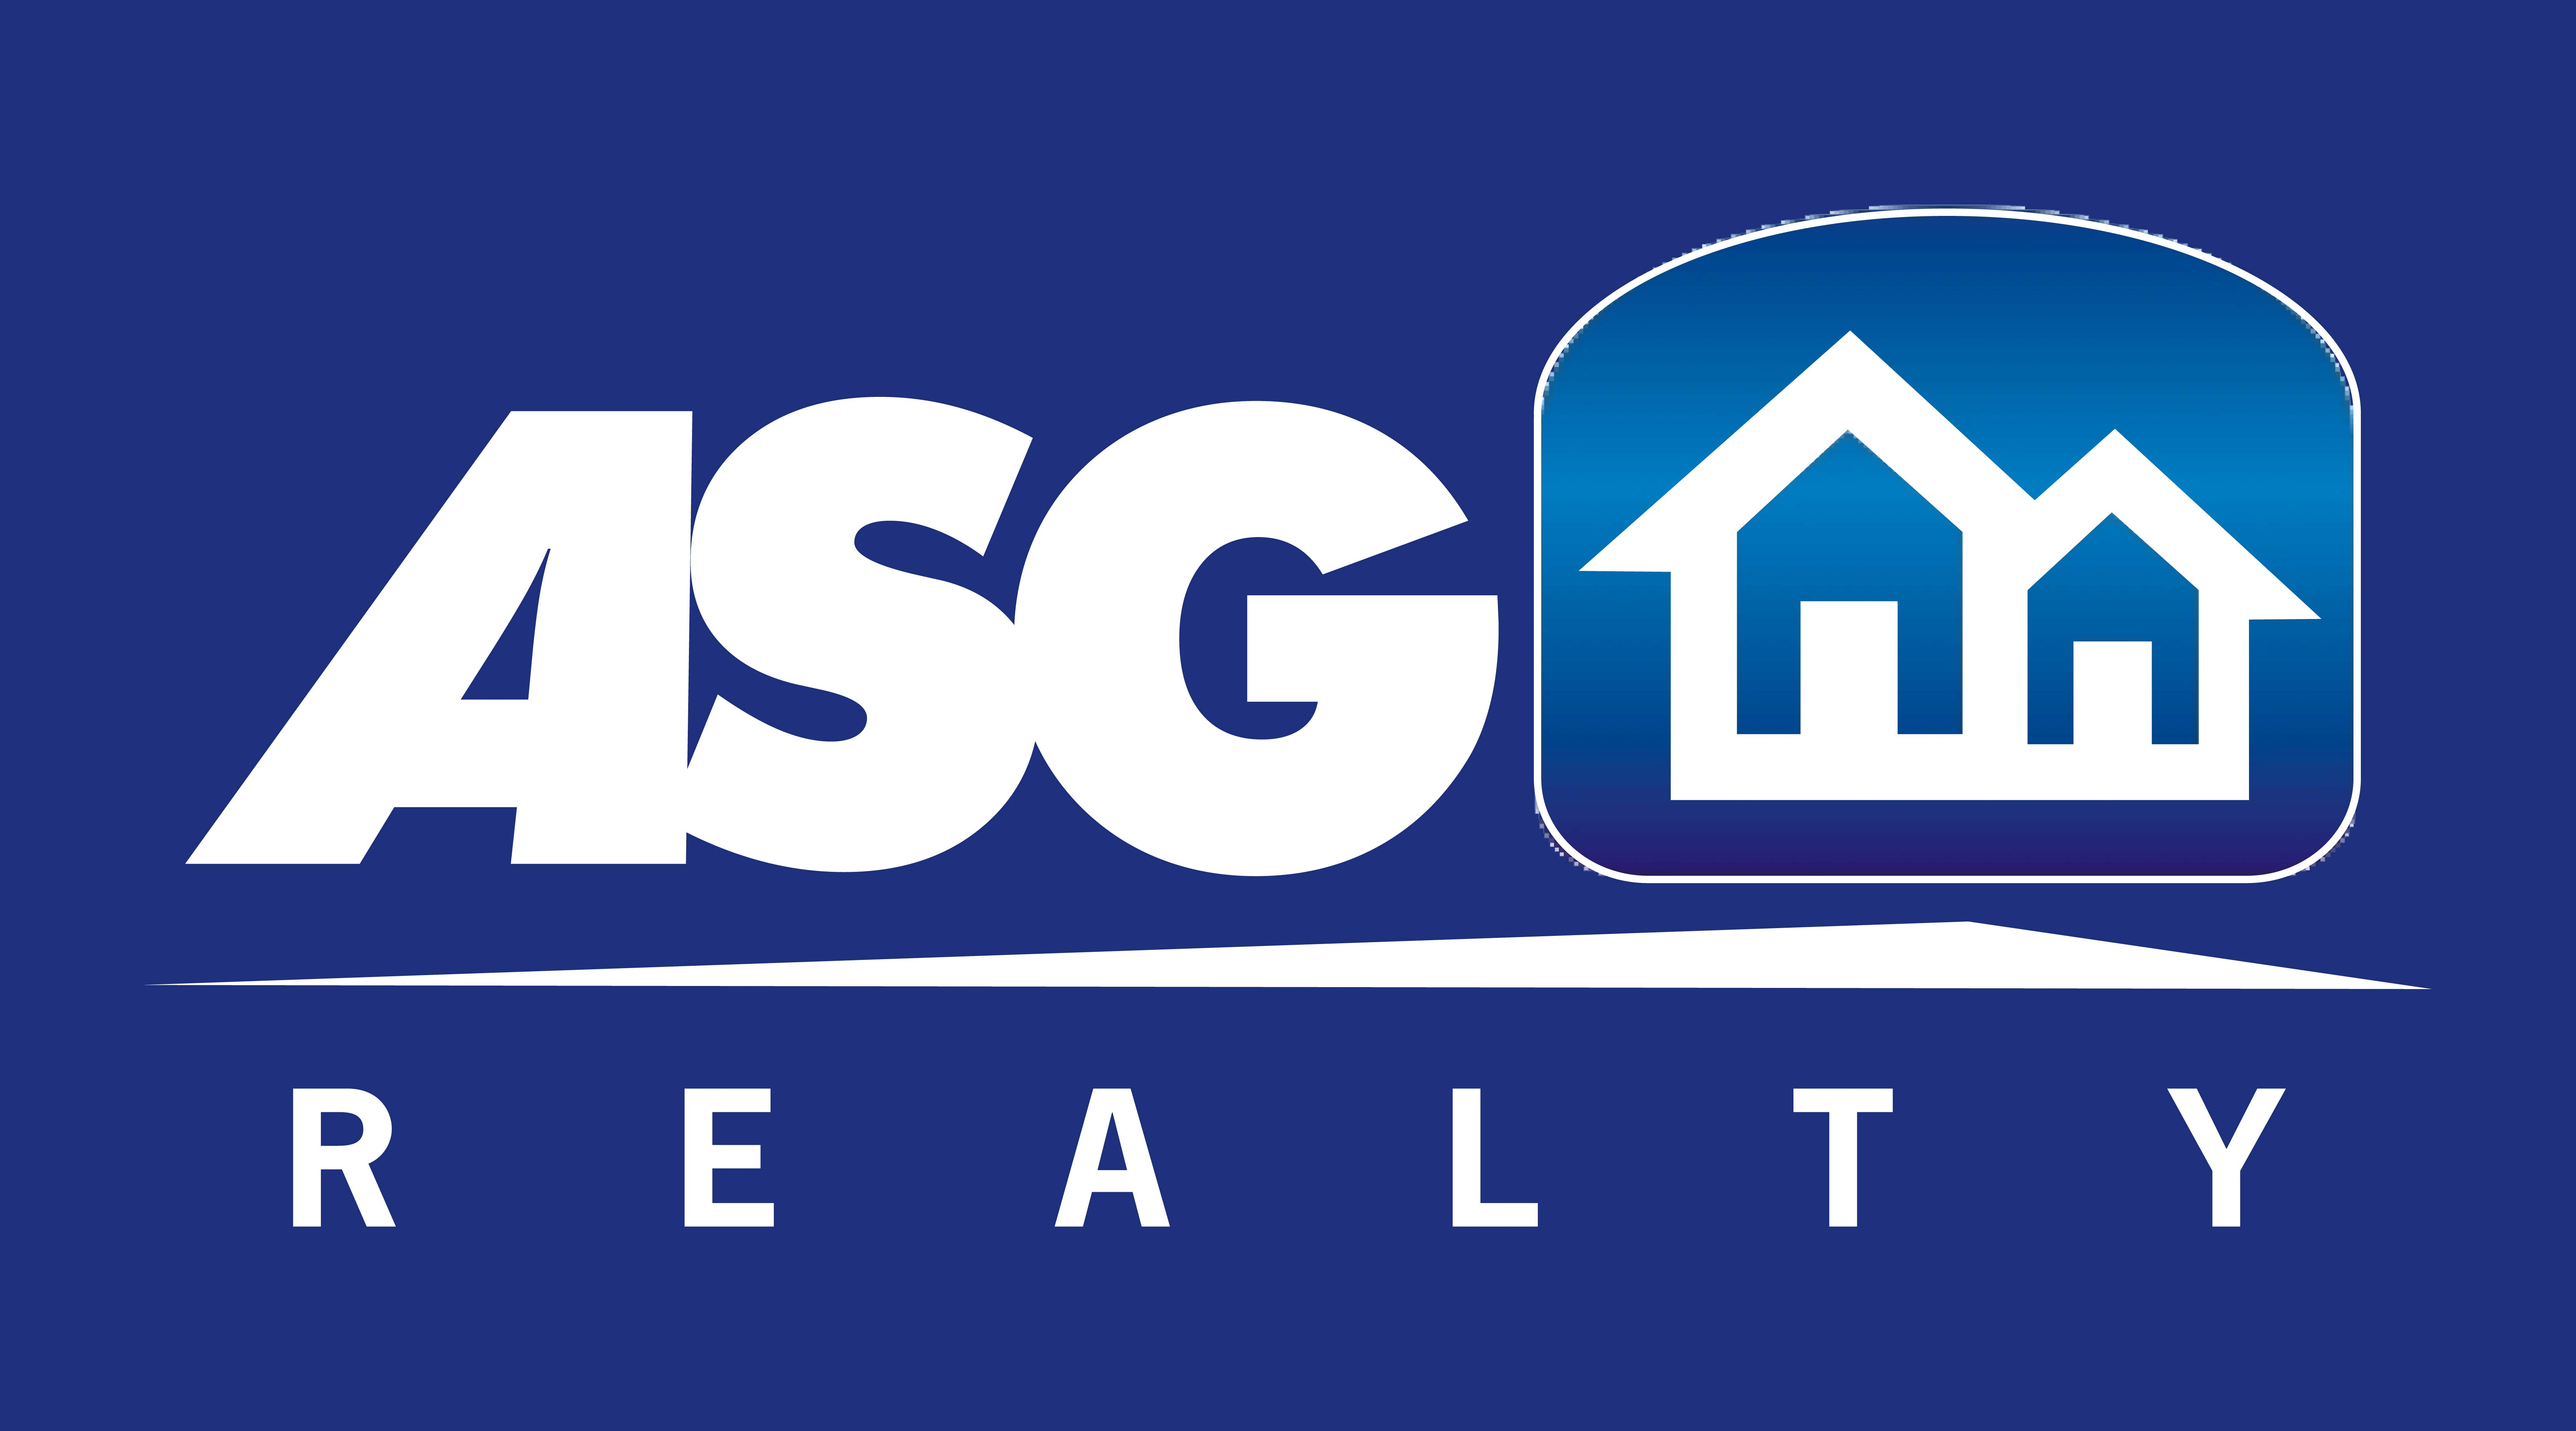 Asg realty  copy